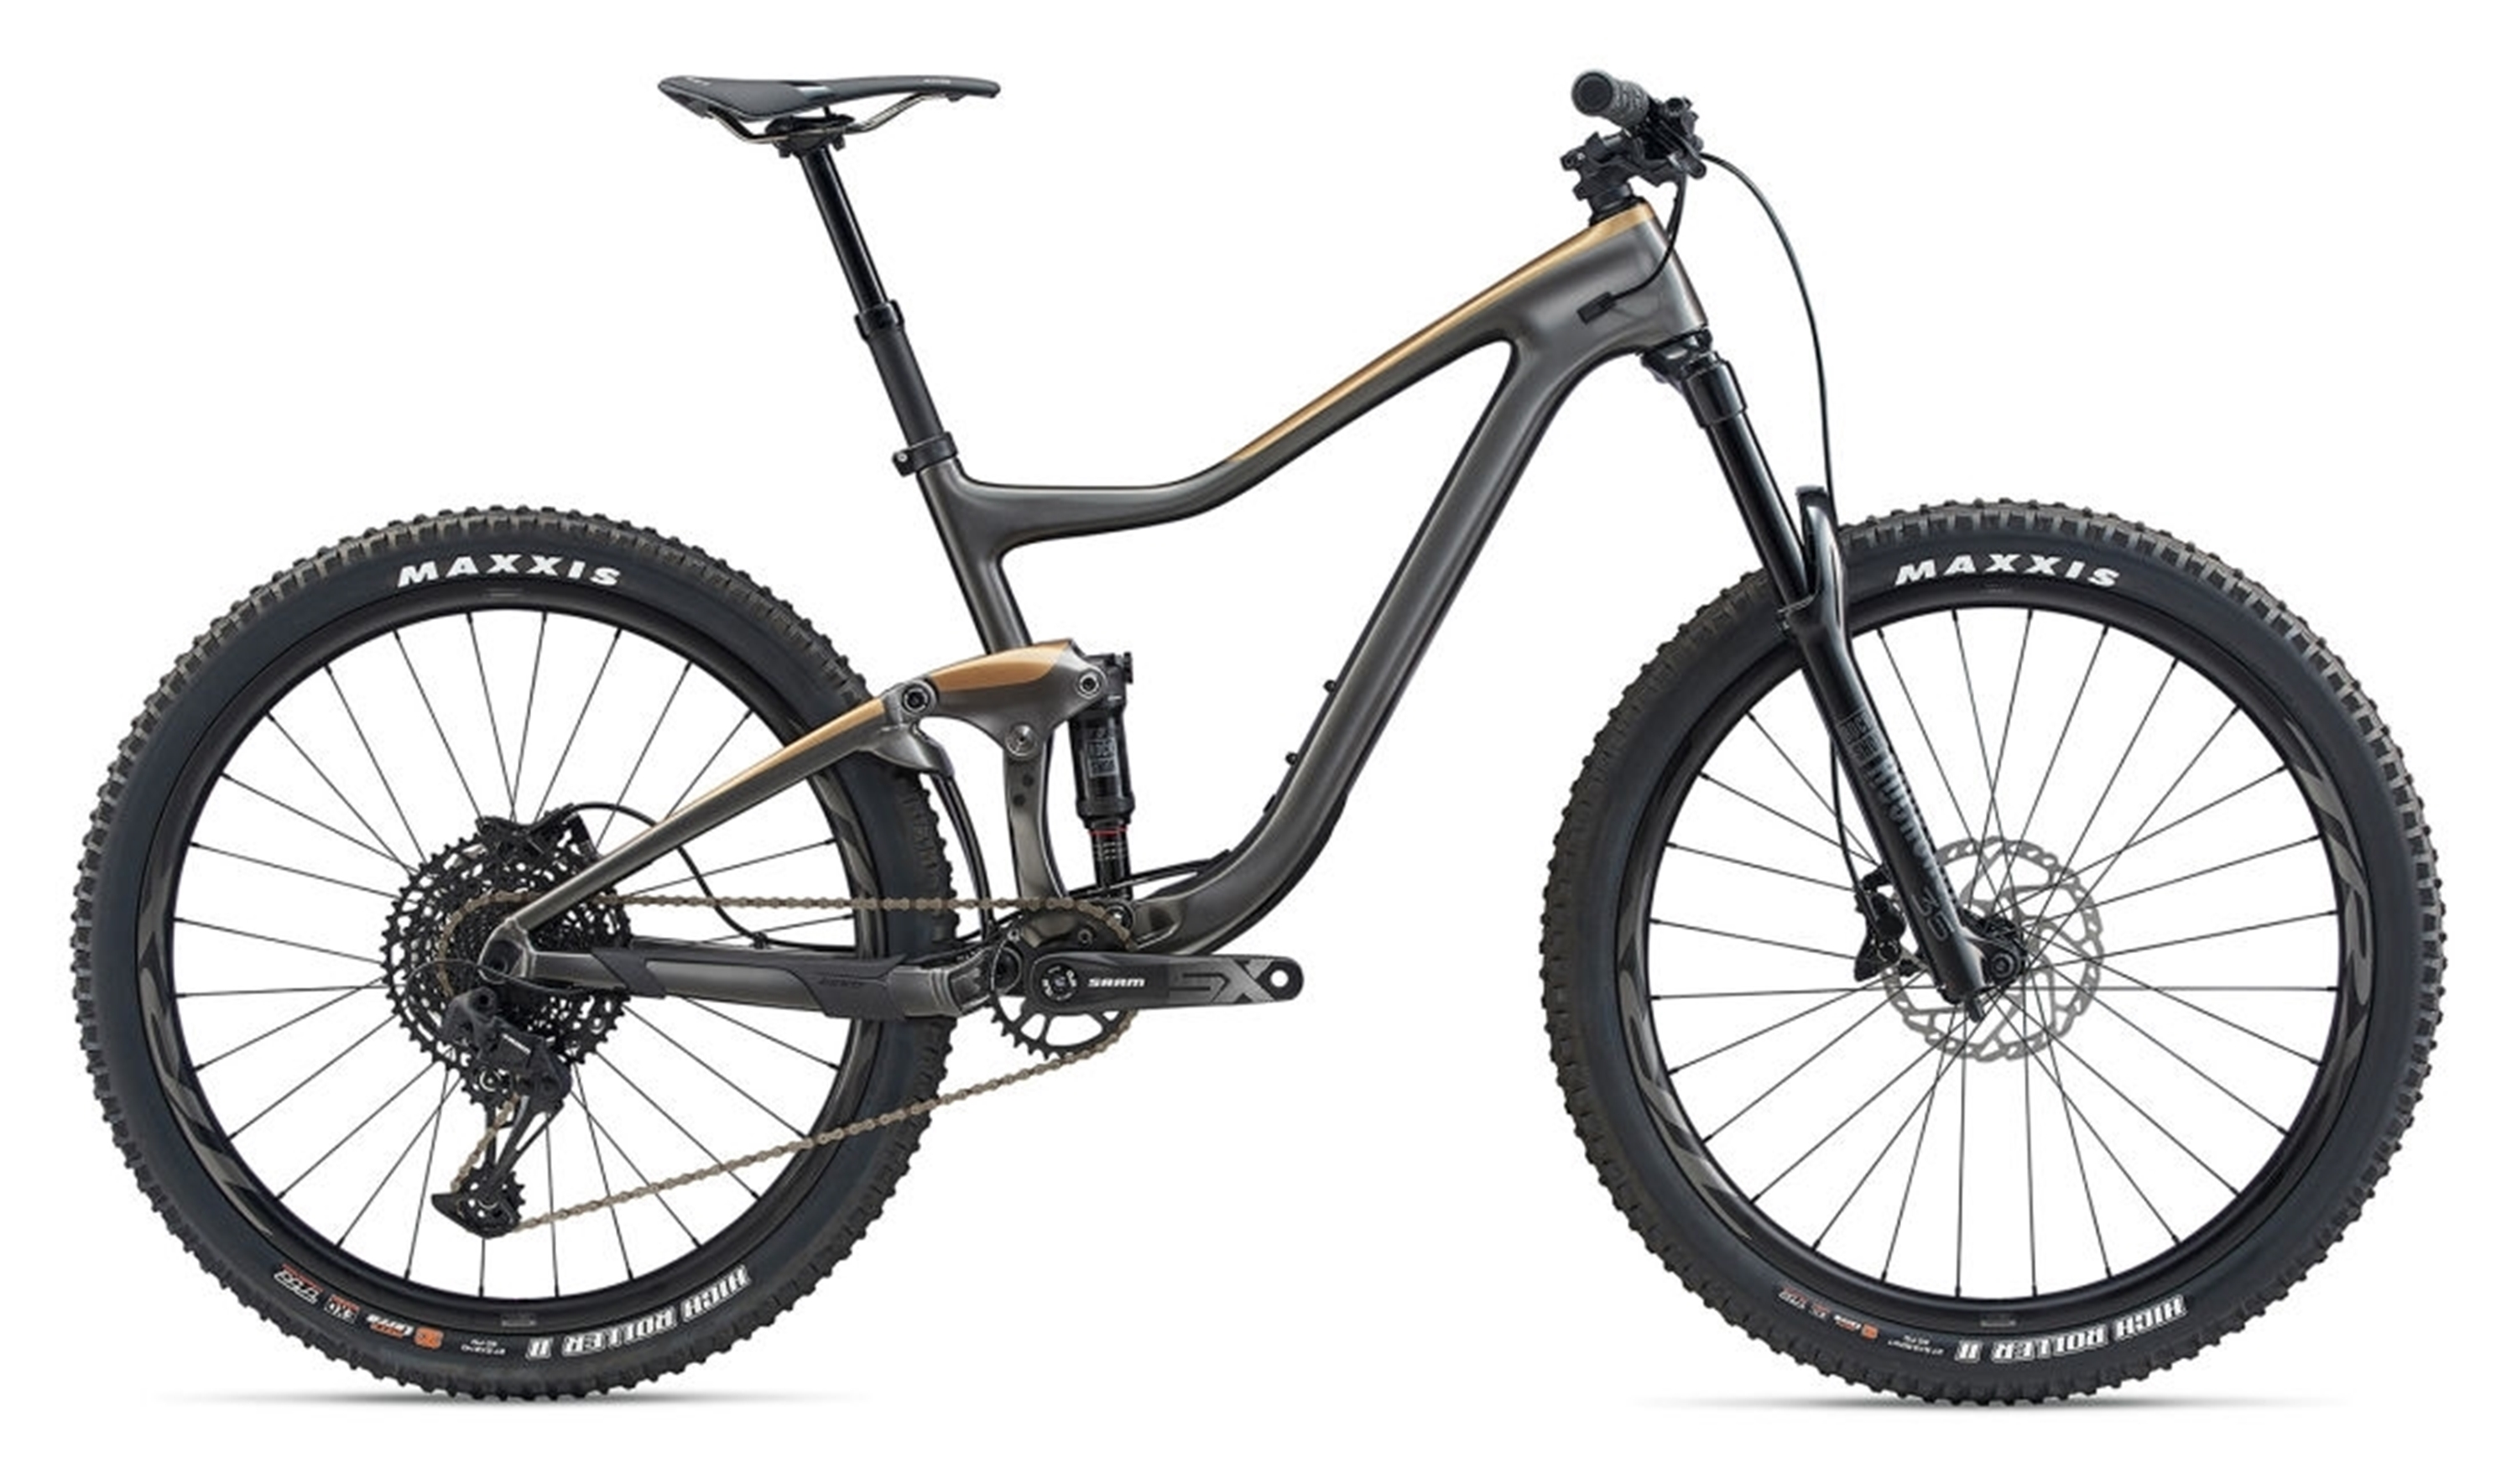 GORSKO KOLO GIANT TRANCE ADVANCED 2 2020